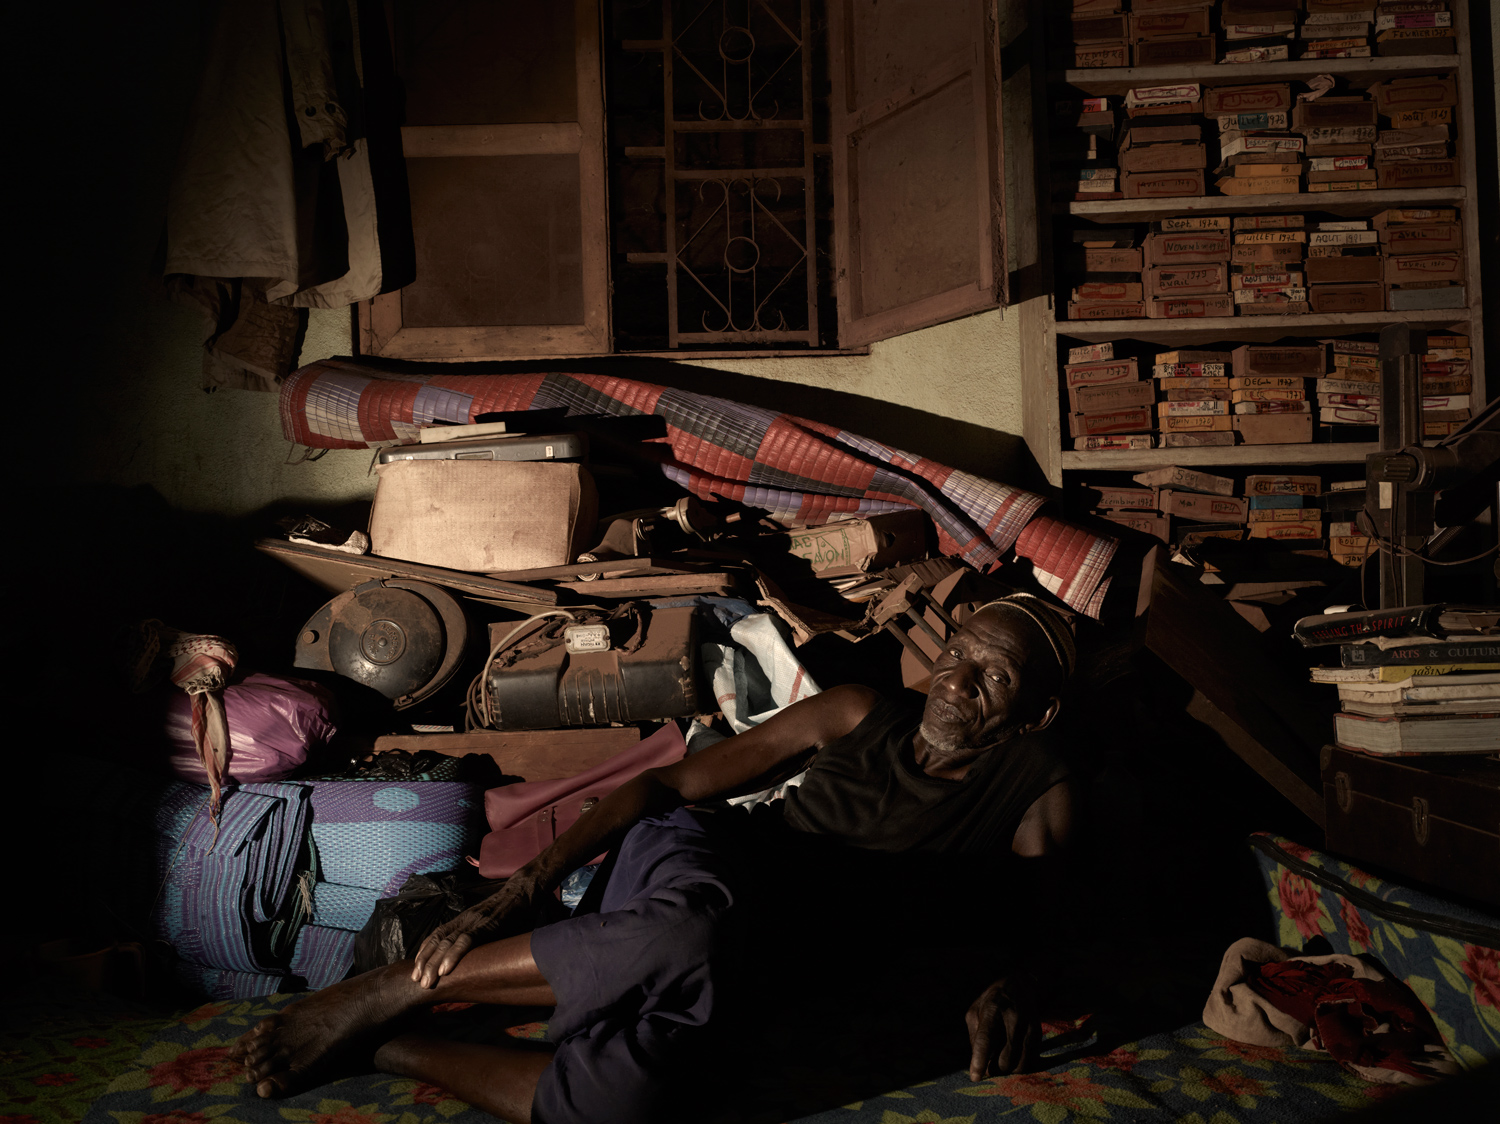 Samba Sidibe (Malick's younger brother) sits on the floor surrounded by old studio equipment and film negatives in Malick's bedroom.